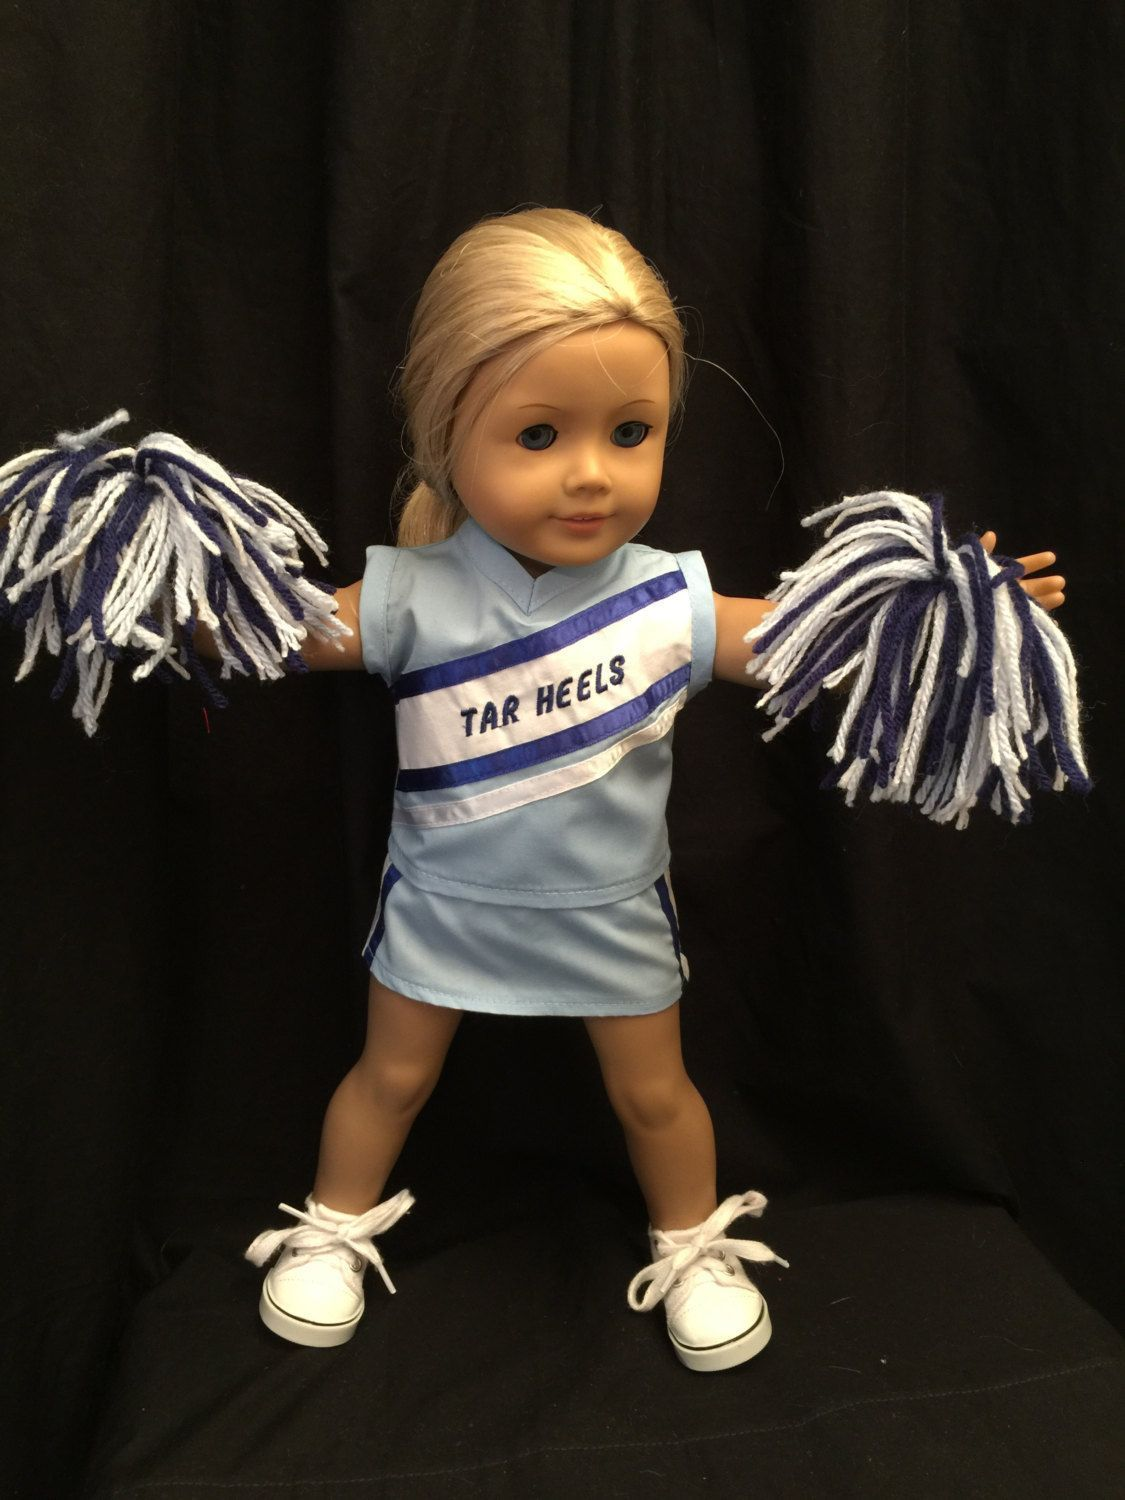 American Girl Doll Clothes: Tar Heels Cheerleading Outfit That Includes Top, Skirt, Panties And Pom-Poms In School Colors Fits 18 Inch Dolls by CutzieDollFashions on Etsy #18inchcheerleaderclothes American Girl Doll Clothes: Tar Heels Cheerleading Outfit That Includes Top, Skirt, Panties And Pom-Poms In School Colors Fits 18 Inch Dolls by CutzieDollFashions on Etsy #18inchcheerleaderclothes American Girl Doll Clothes: Tar Heels Cheerleading Outfit That Includes Top, Skirt, Panties And Pom-Poms I #18inchcheerleaderclothes